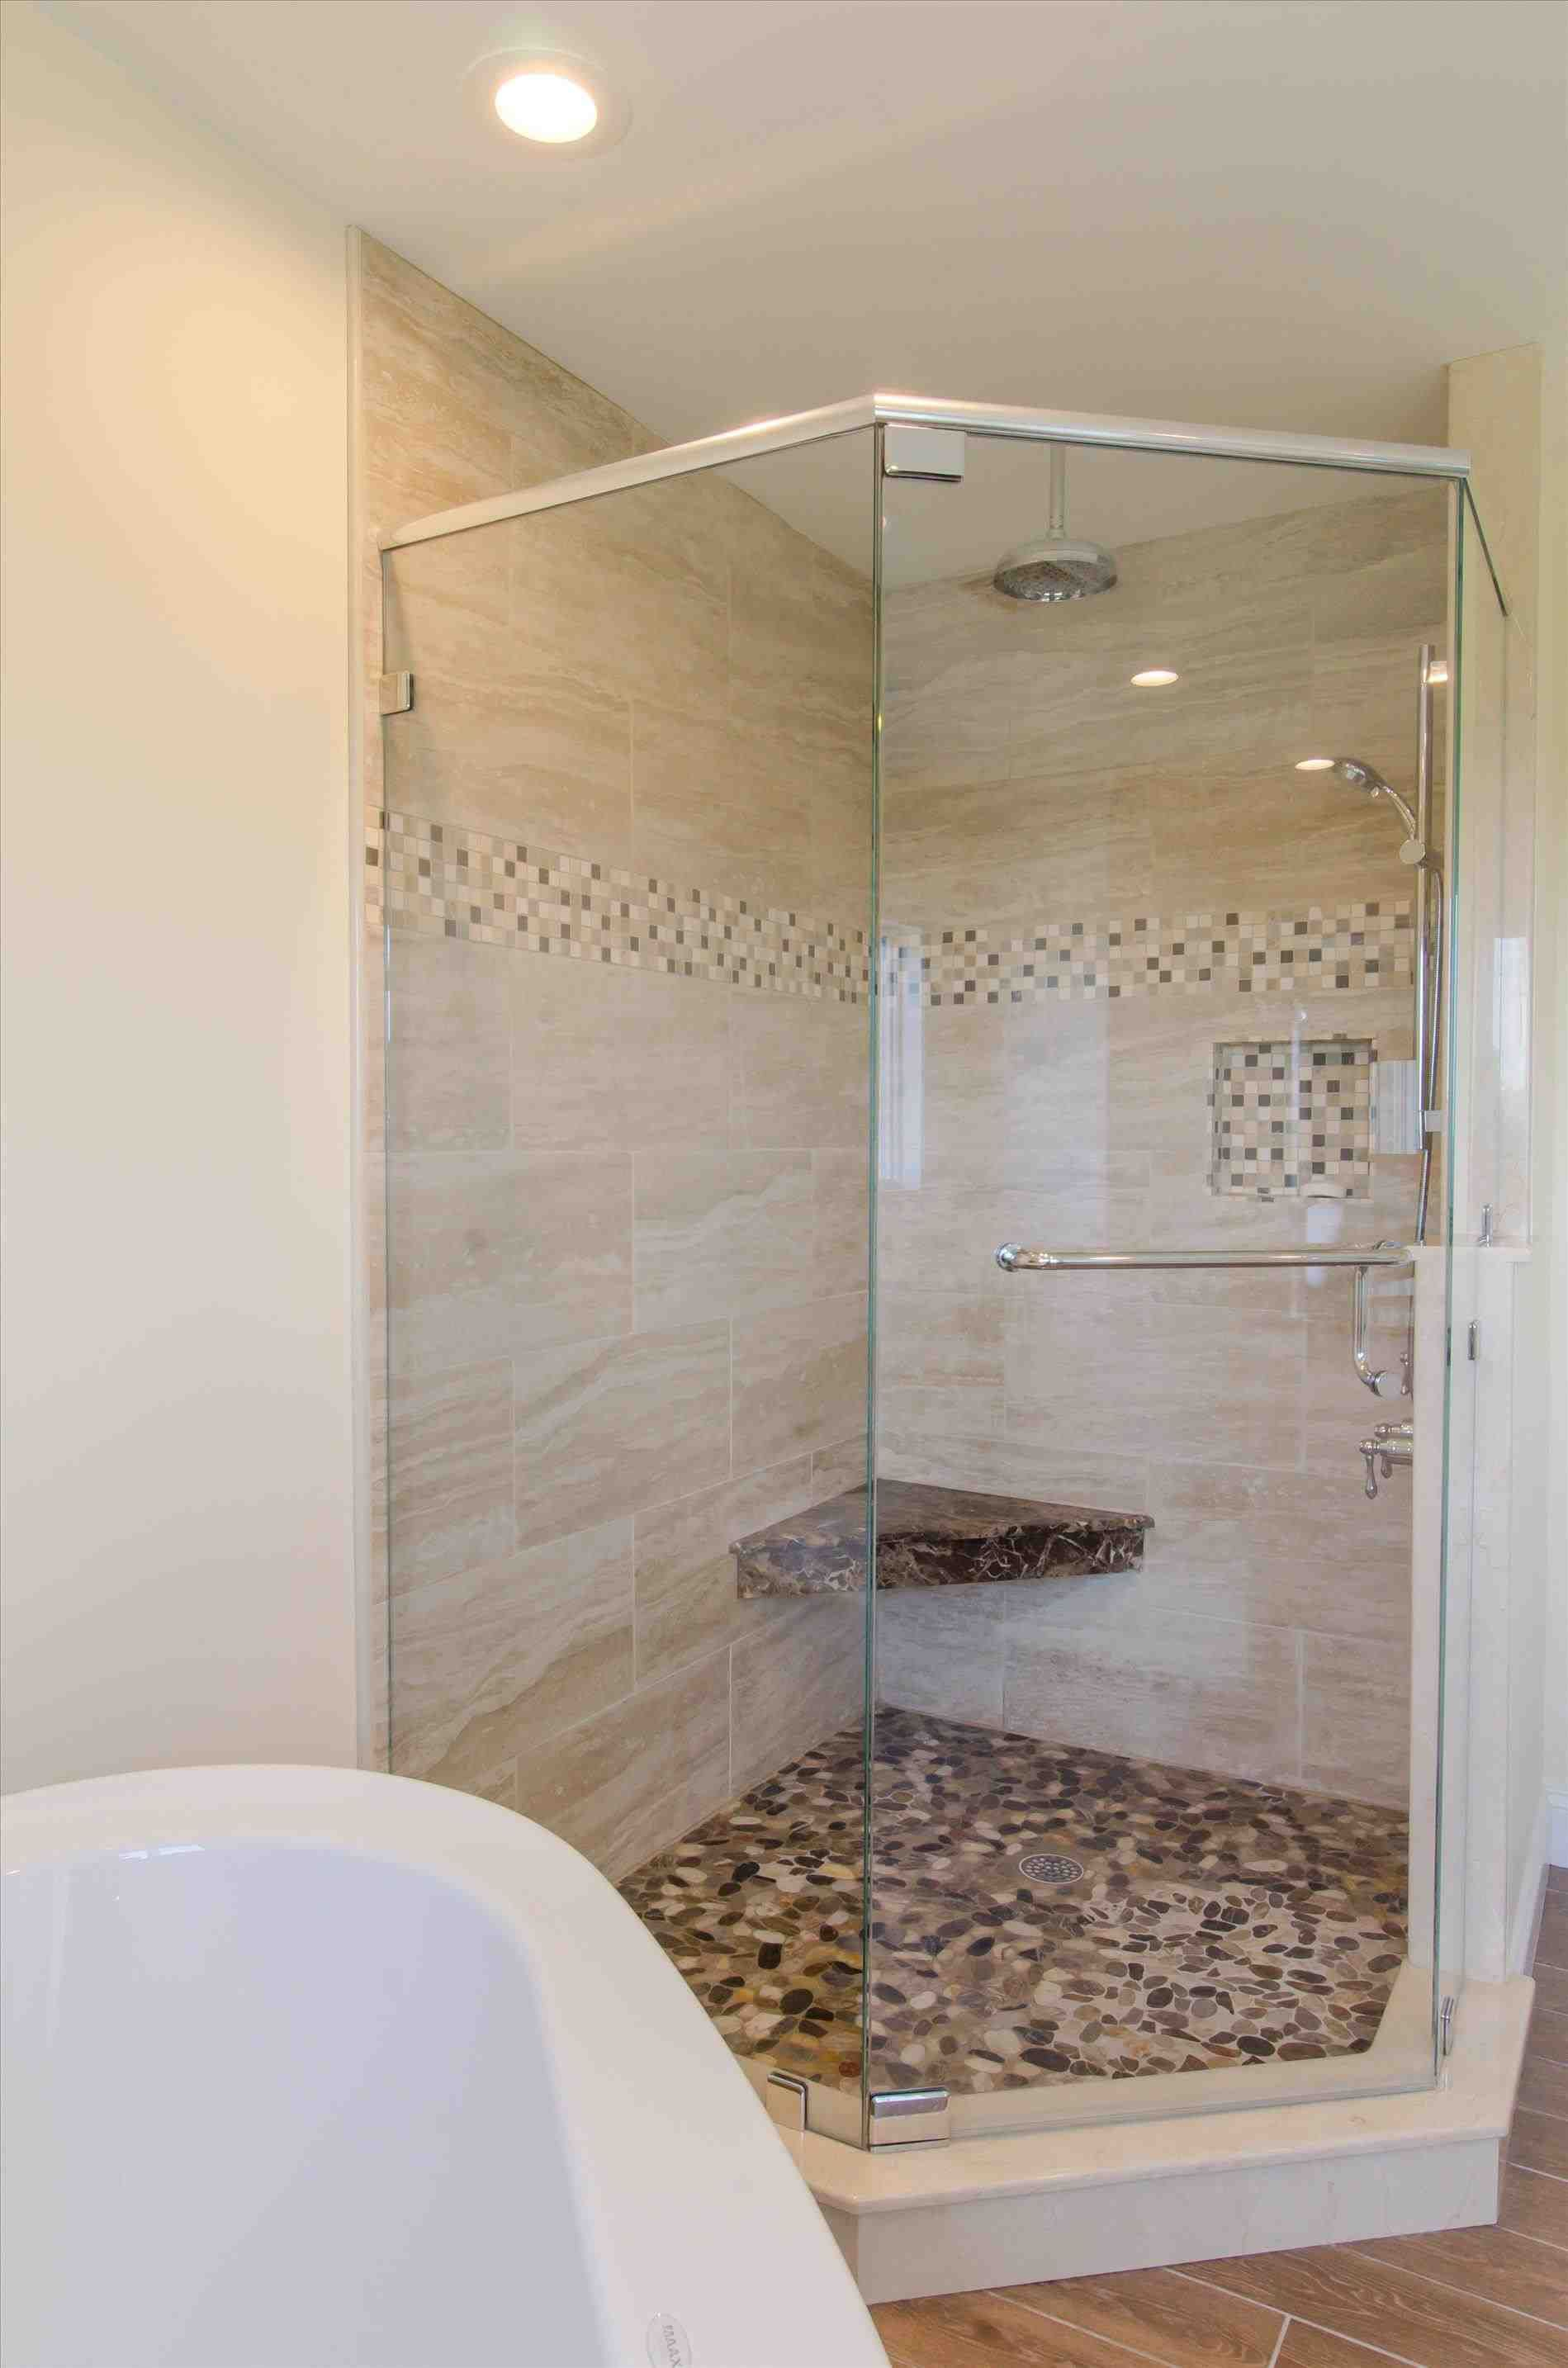 This Spa Tub With Shower  White Tile Bathroom And